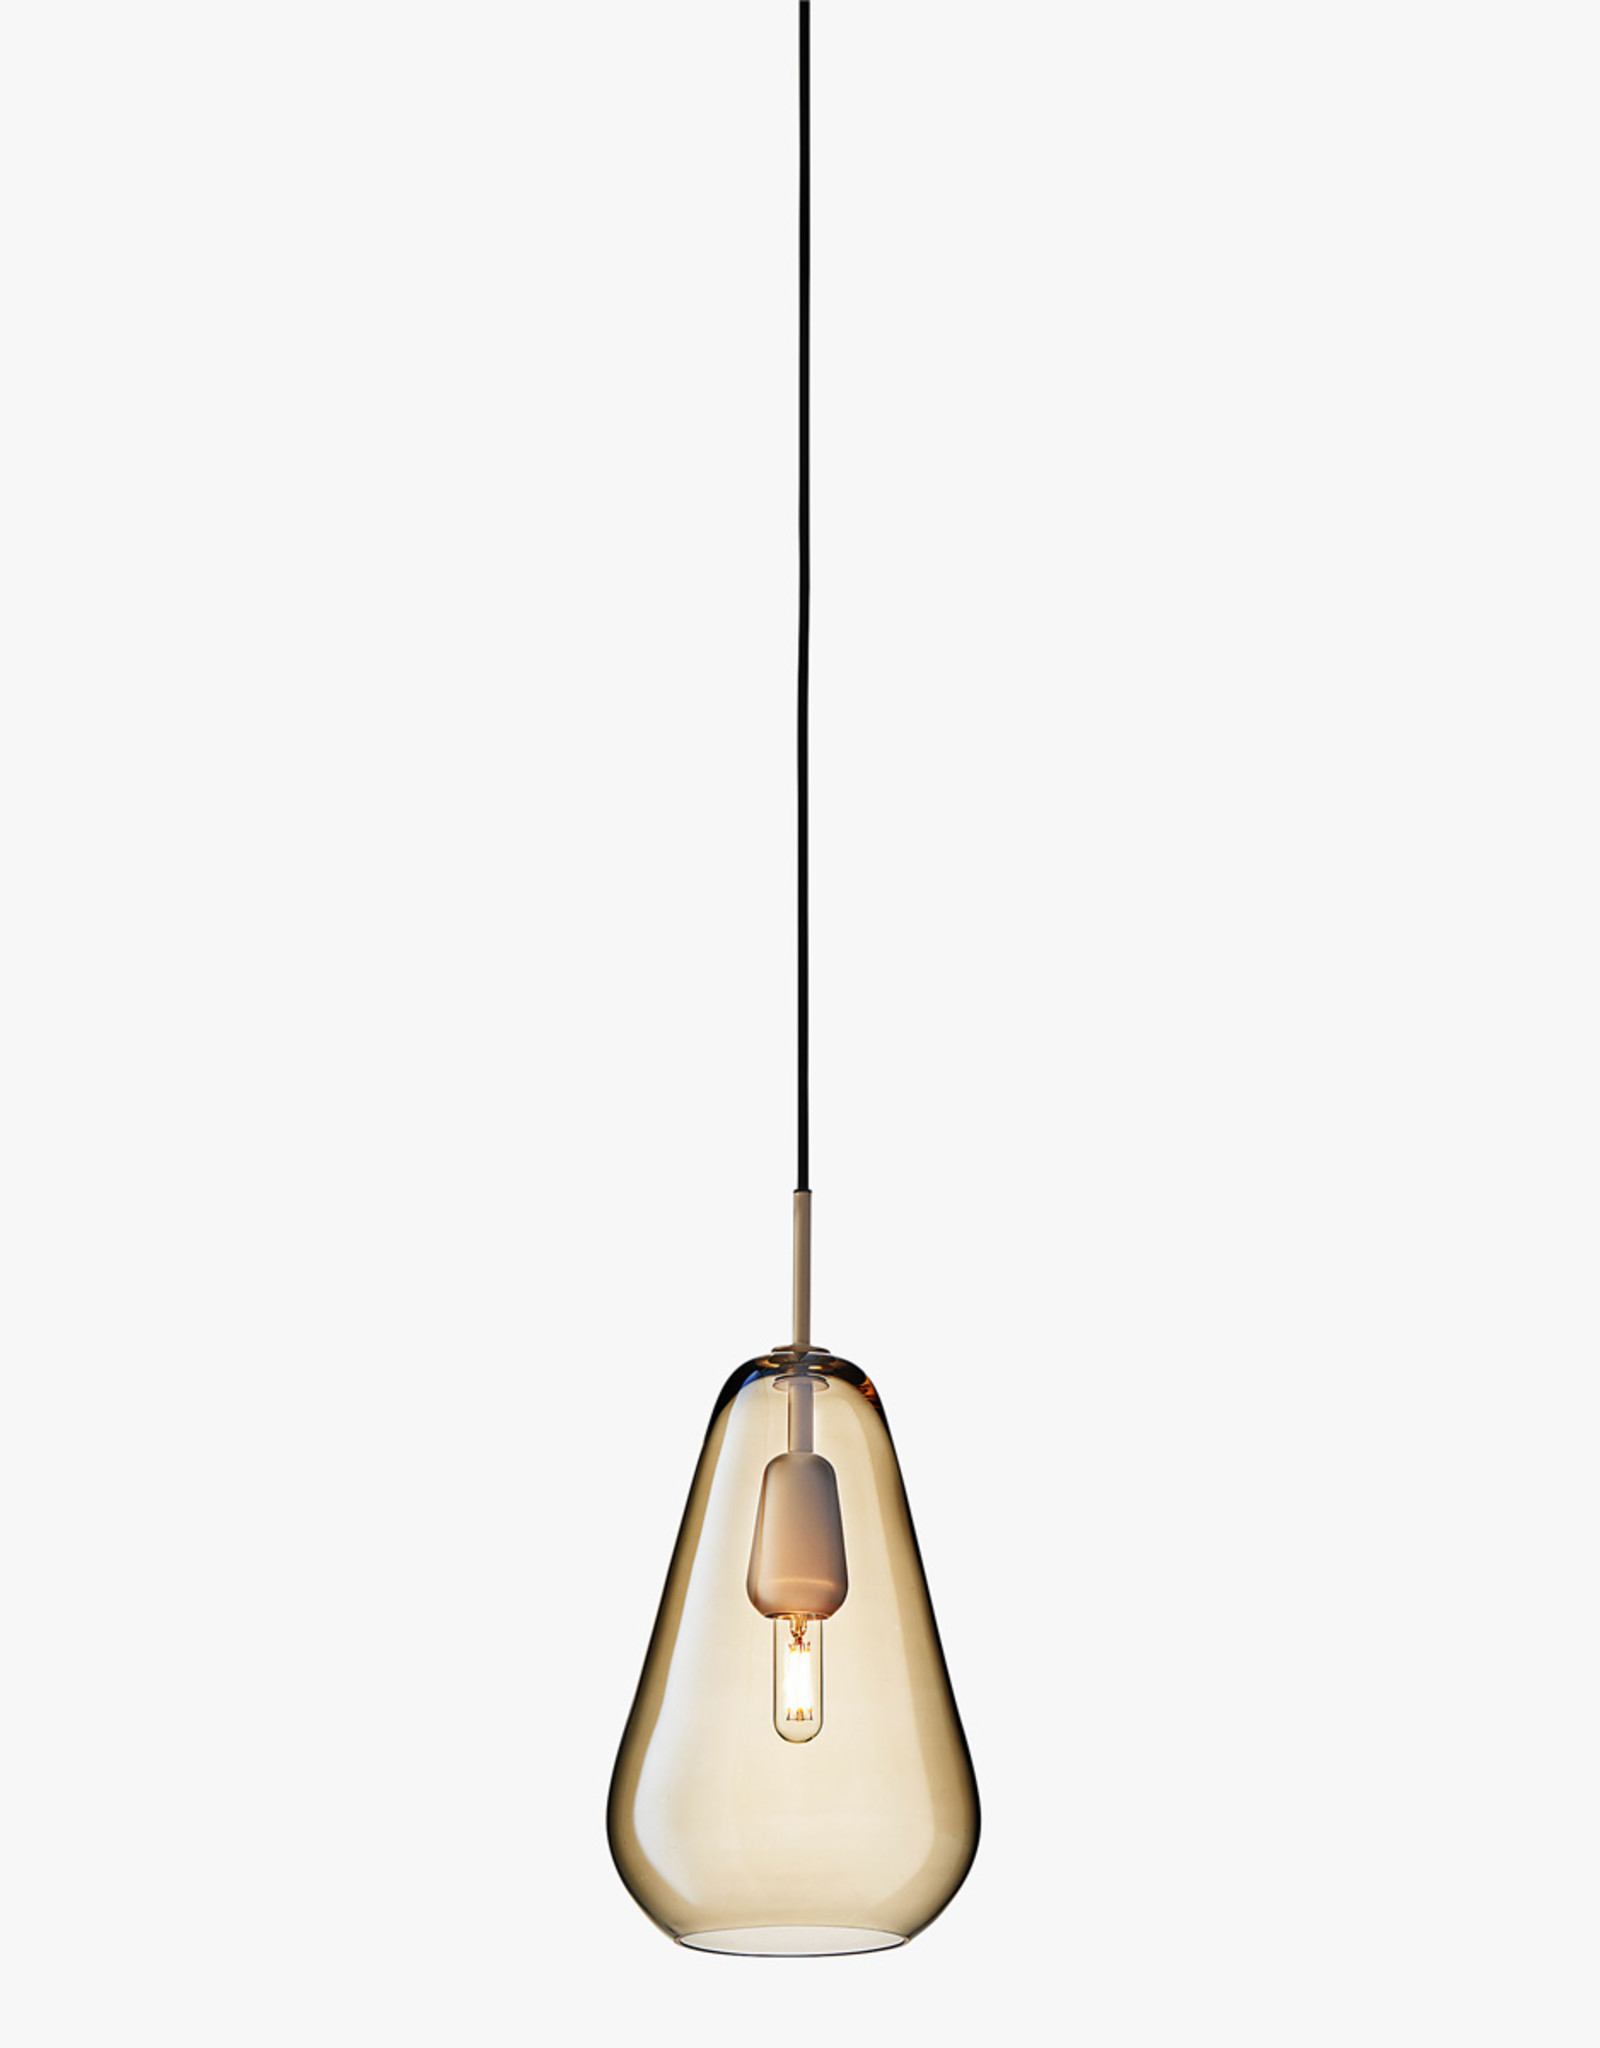 Nuura Anoli 1 pendant by Sofie Refer | M | Nordic gold/gold